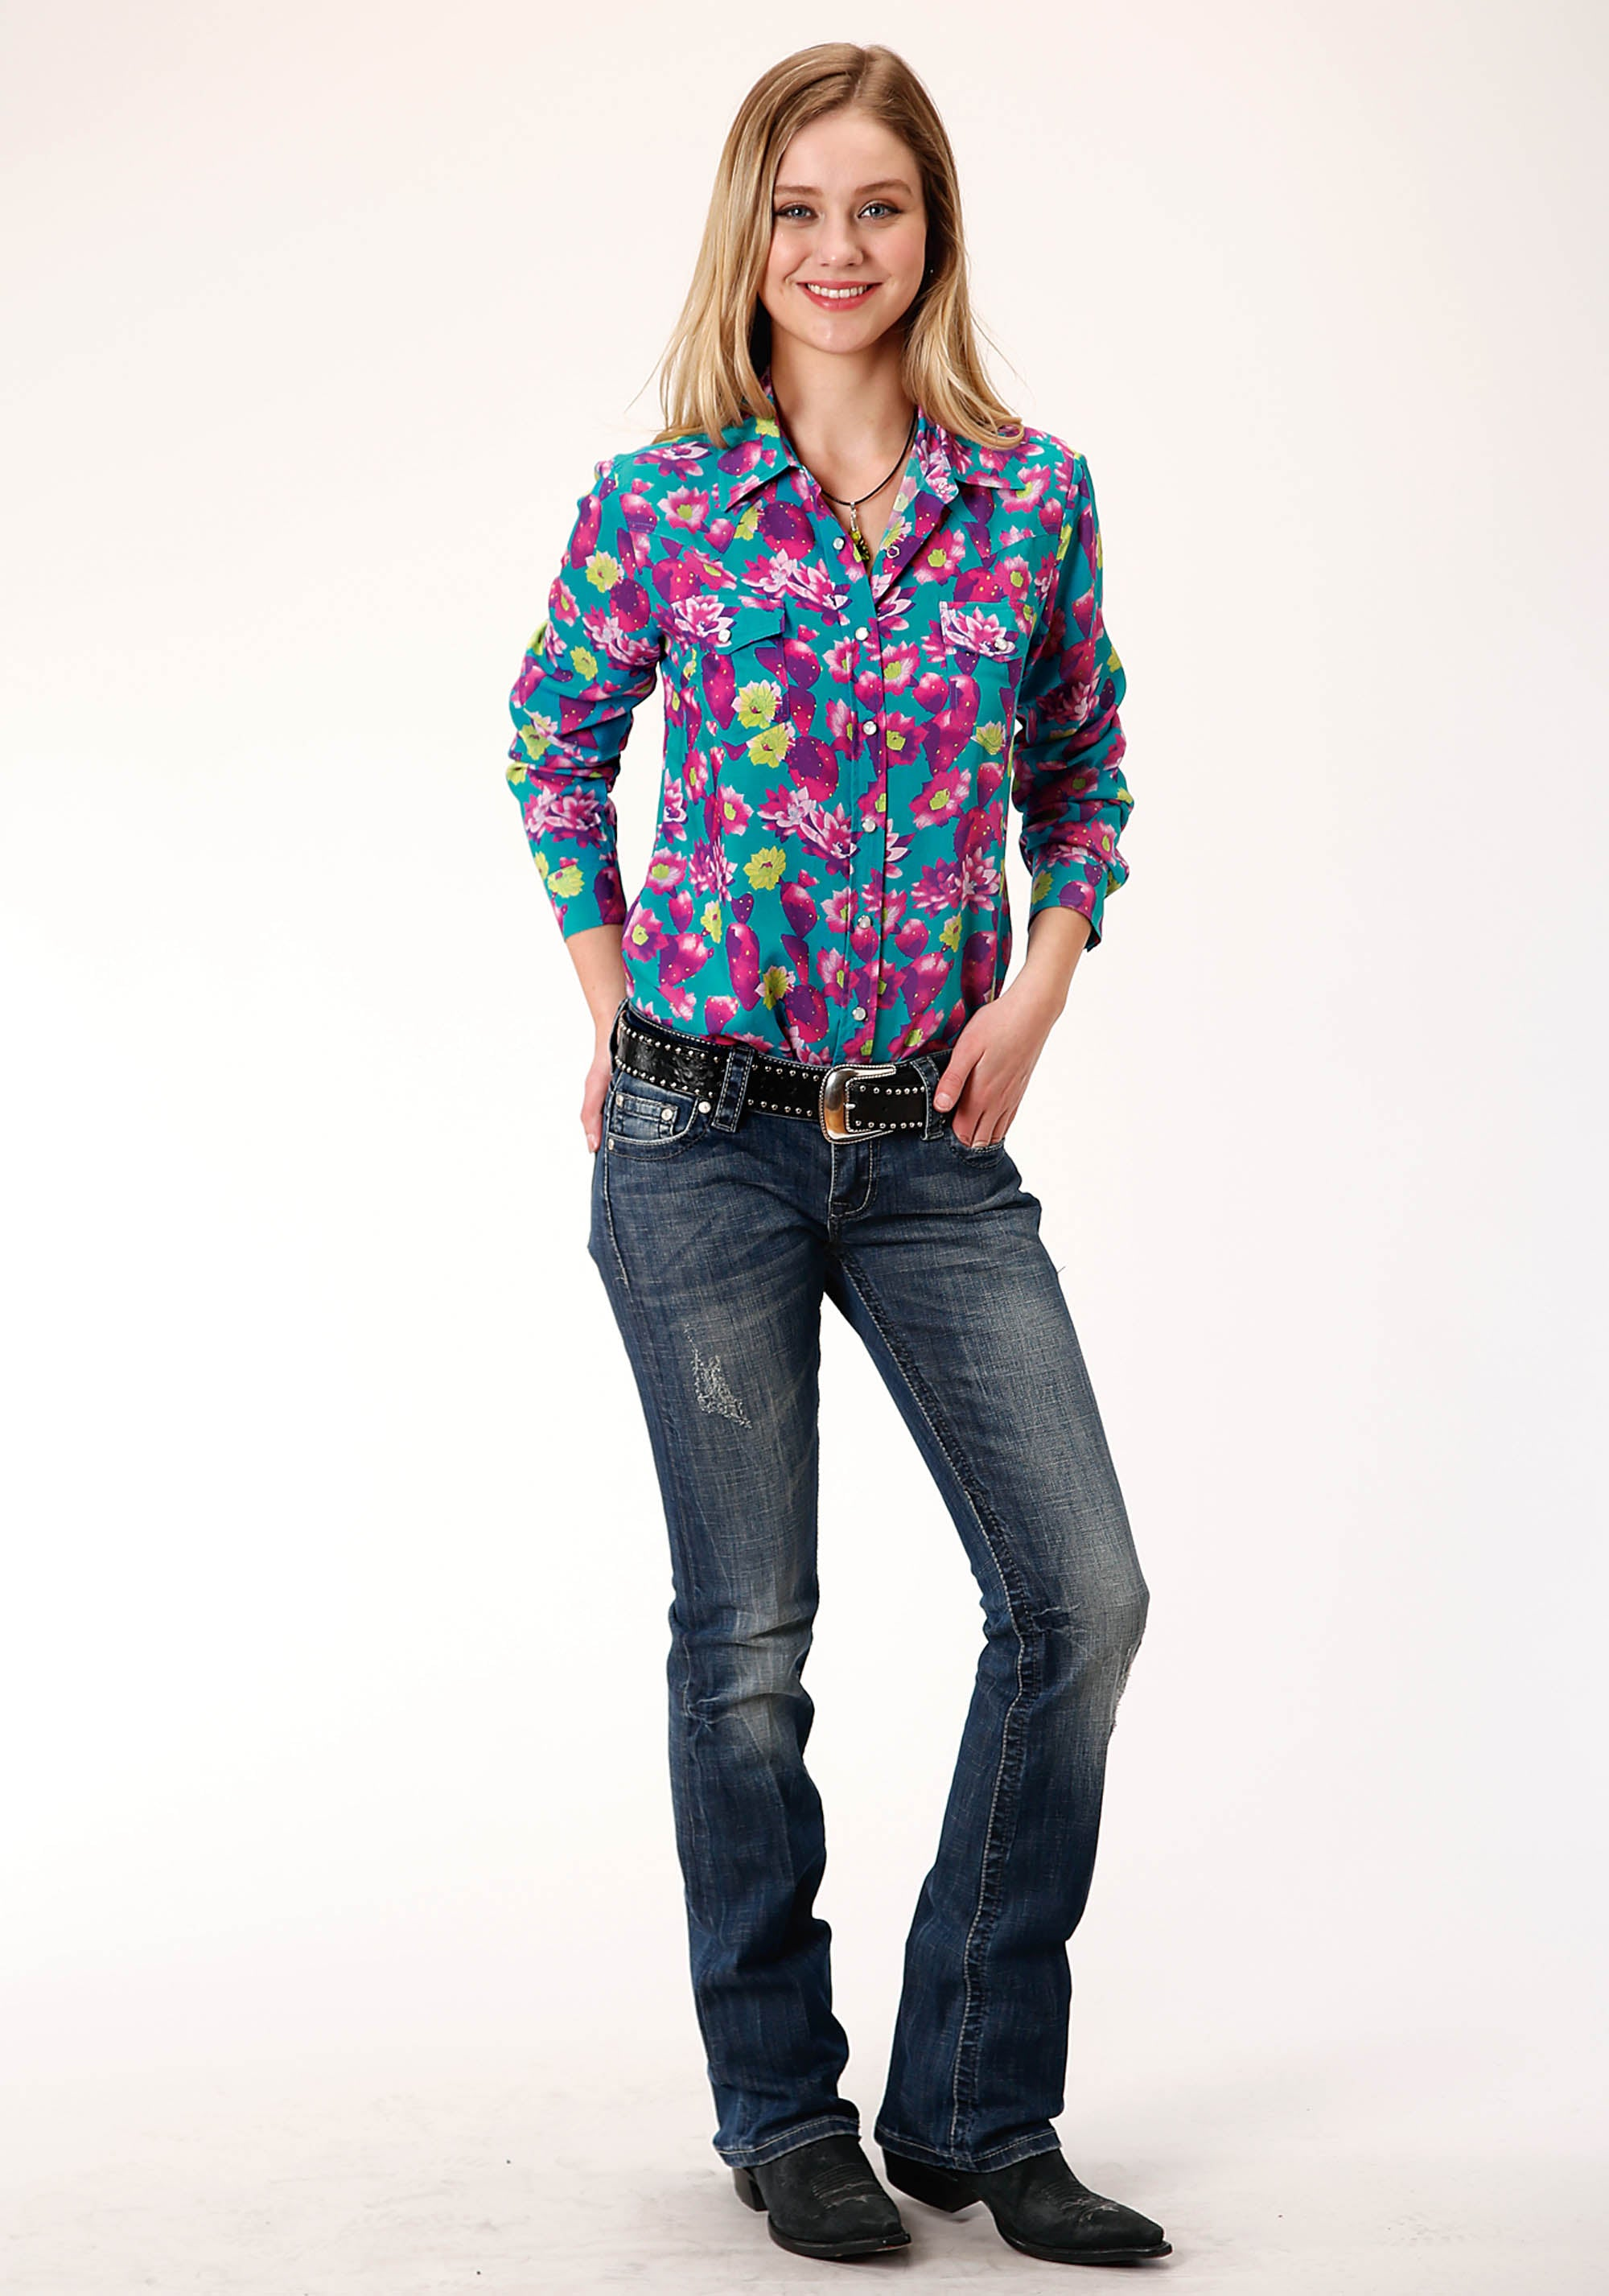 ROPER WOMENS BLUE 00336 CACTUS PRT RAYON WESTERN BLOUSE FIVE STAR COLLECTION- FALL I LONG SLEEVE